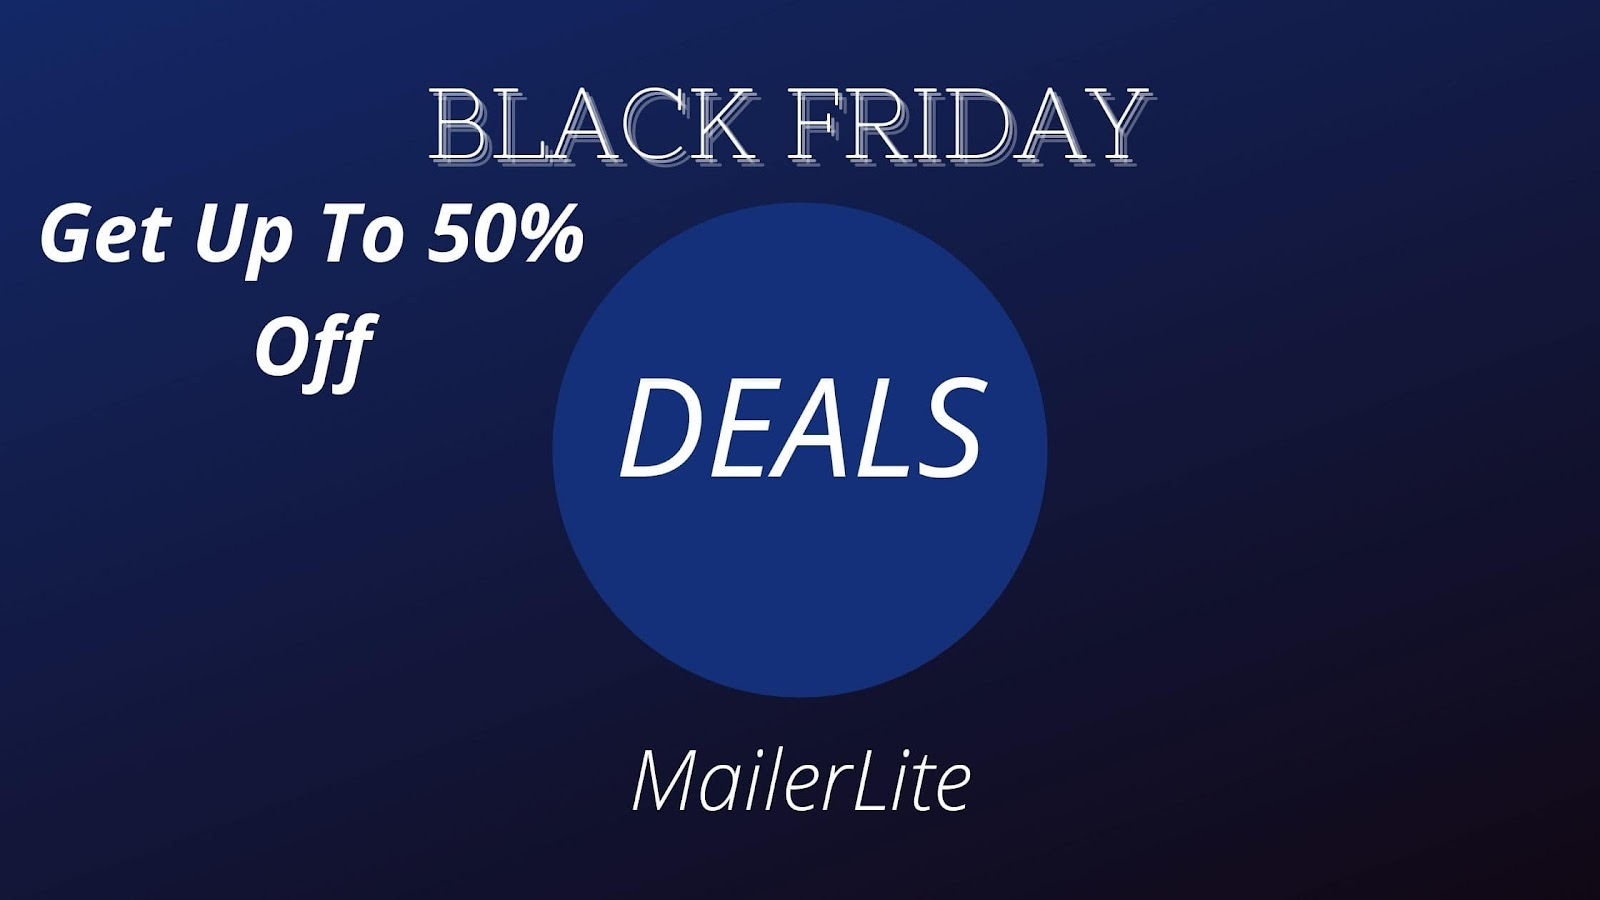 MailerLite : GET UP TO 50% OFF